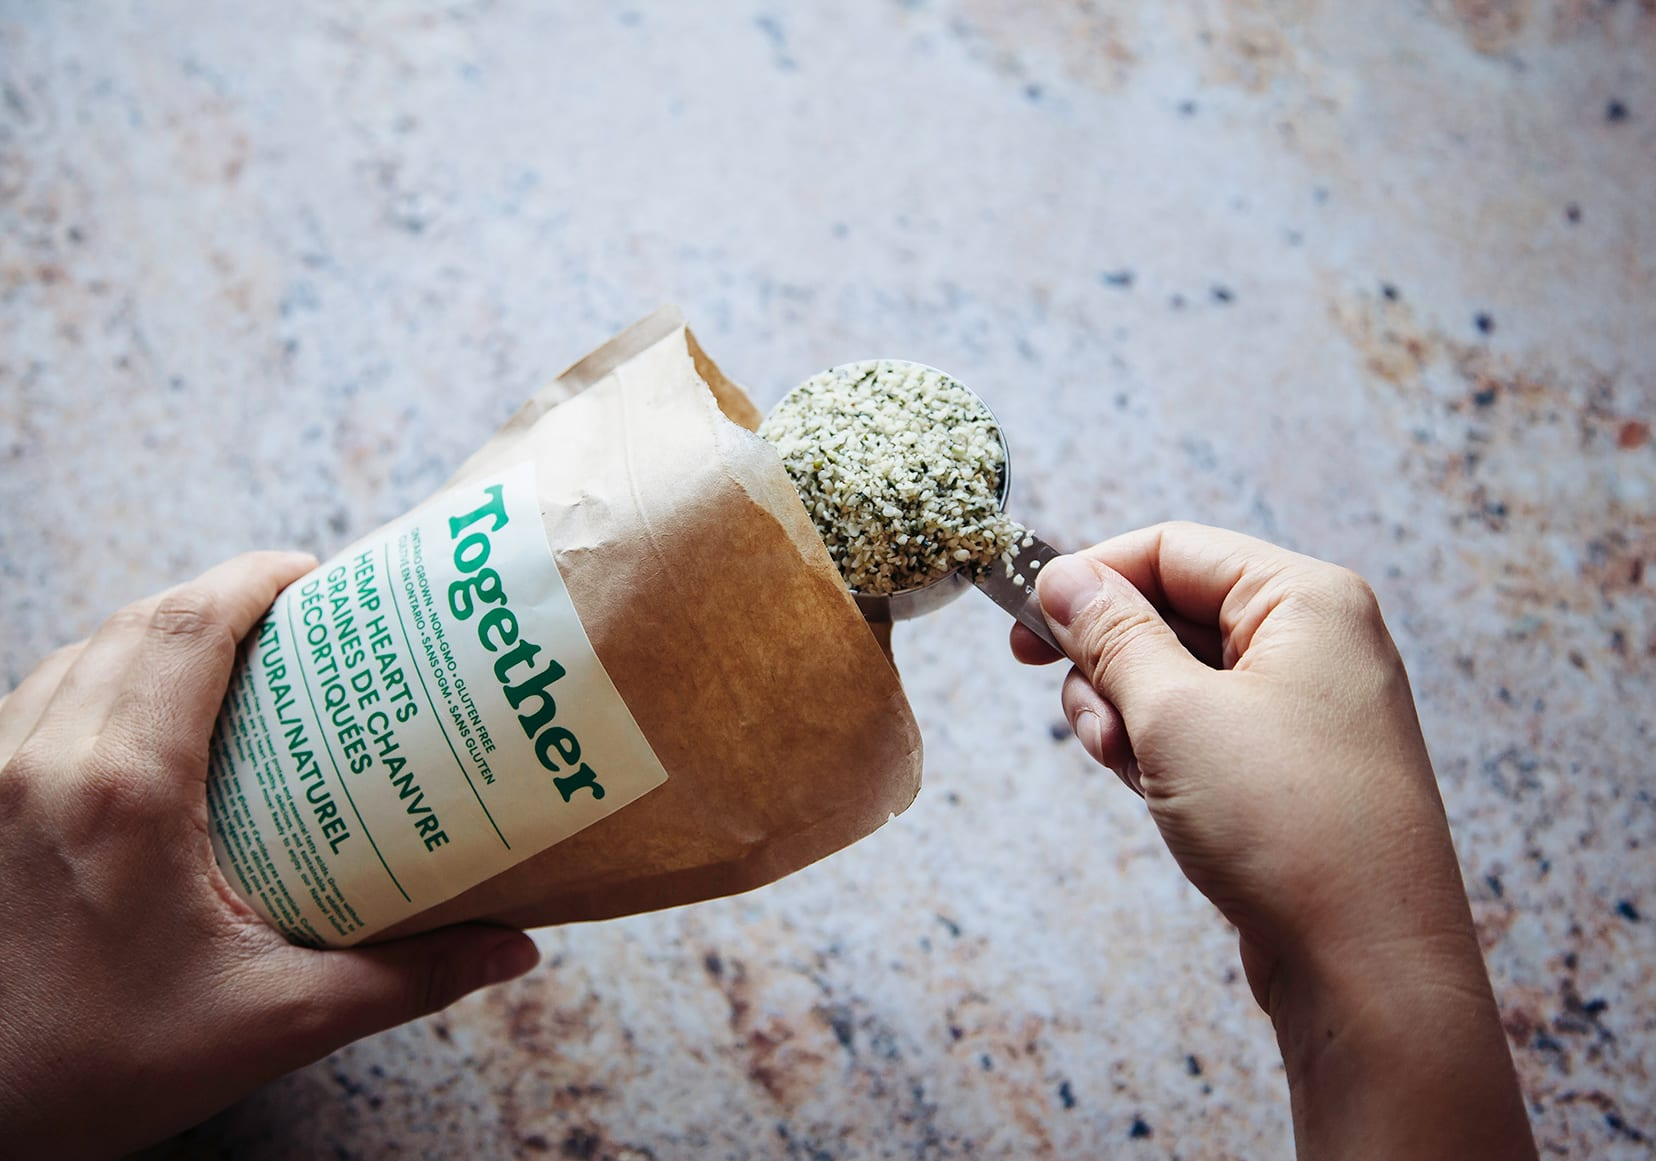 An overhead shot of a hand scooping some hemp seeds from a brown paper bag.